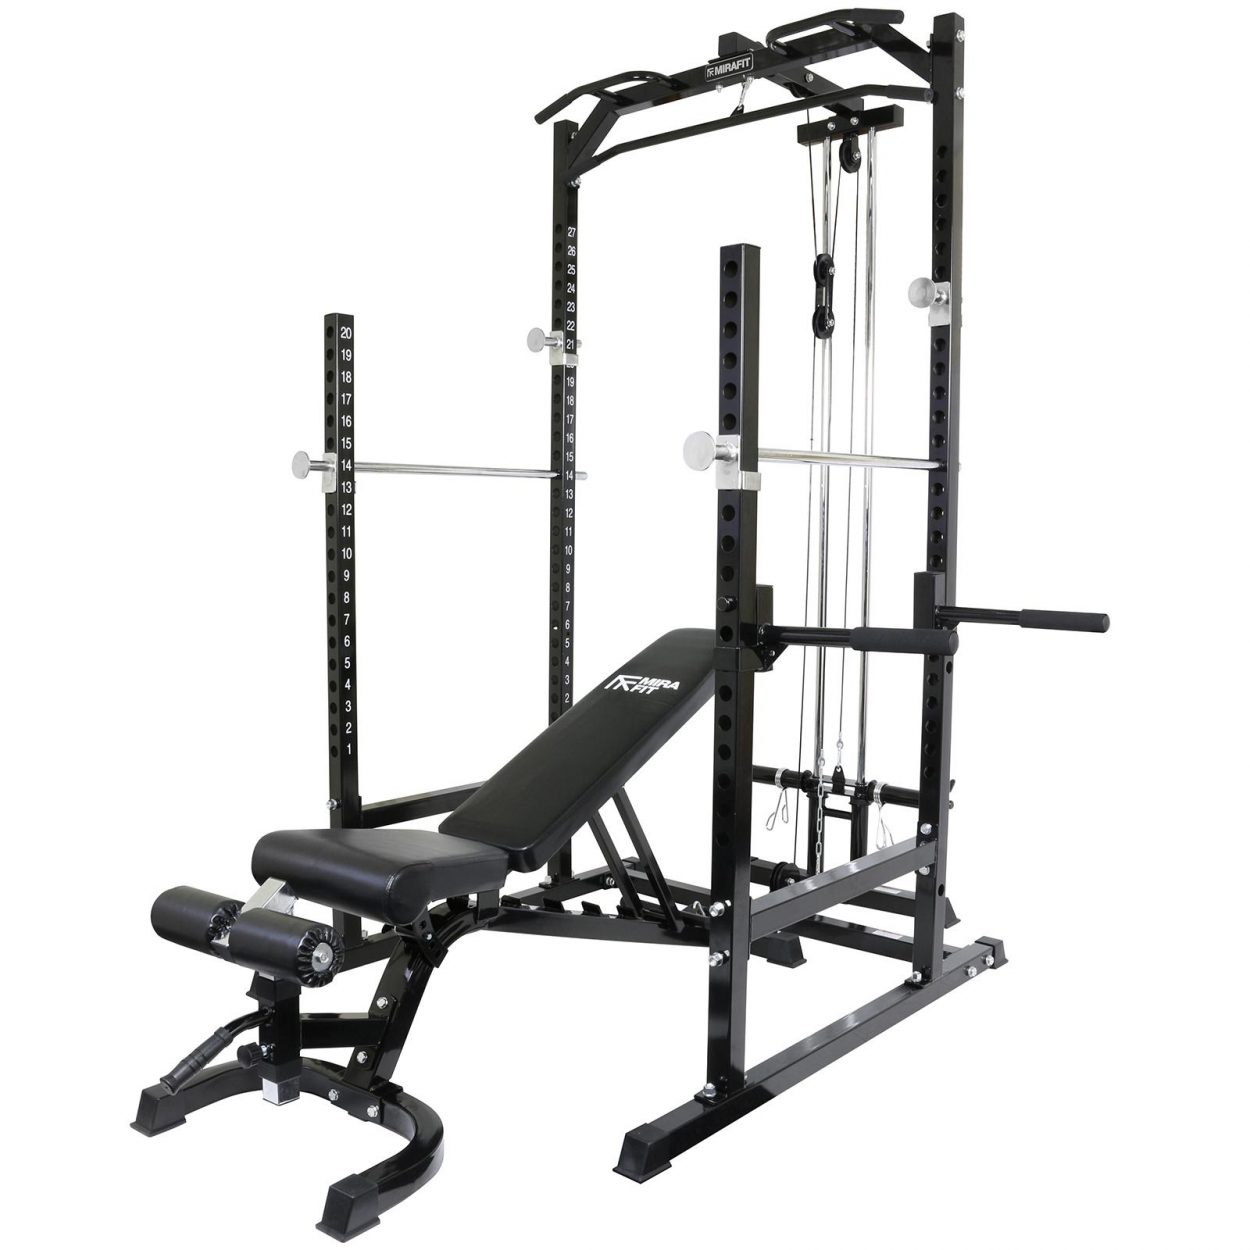 Mirafit Half Power Rack with Cable System & Adjustable Weight Bench